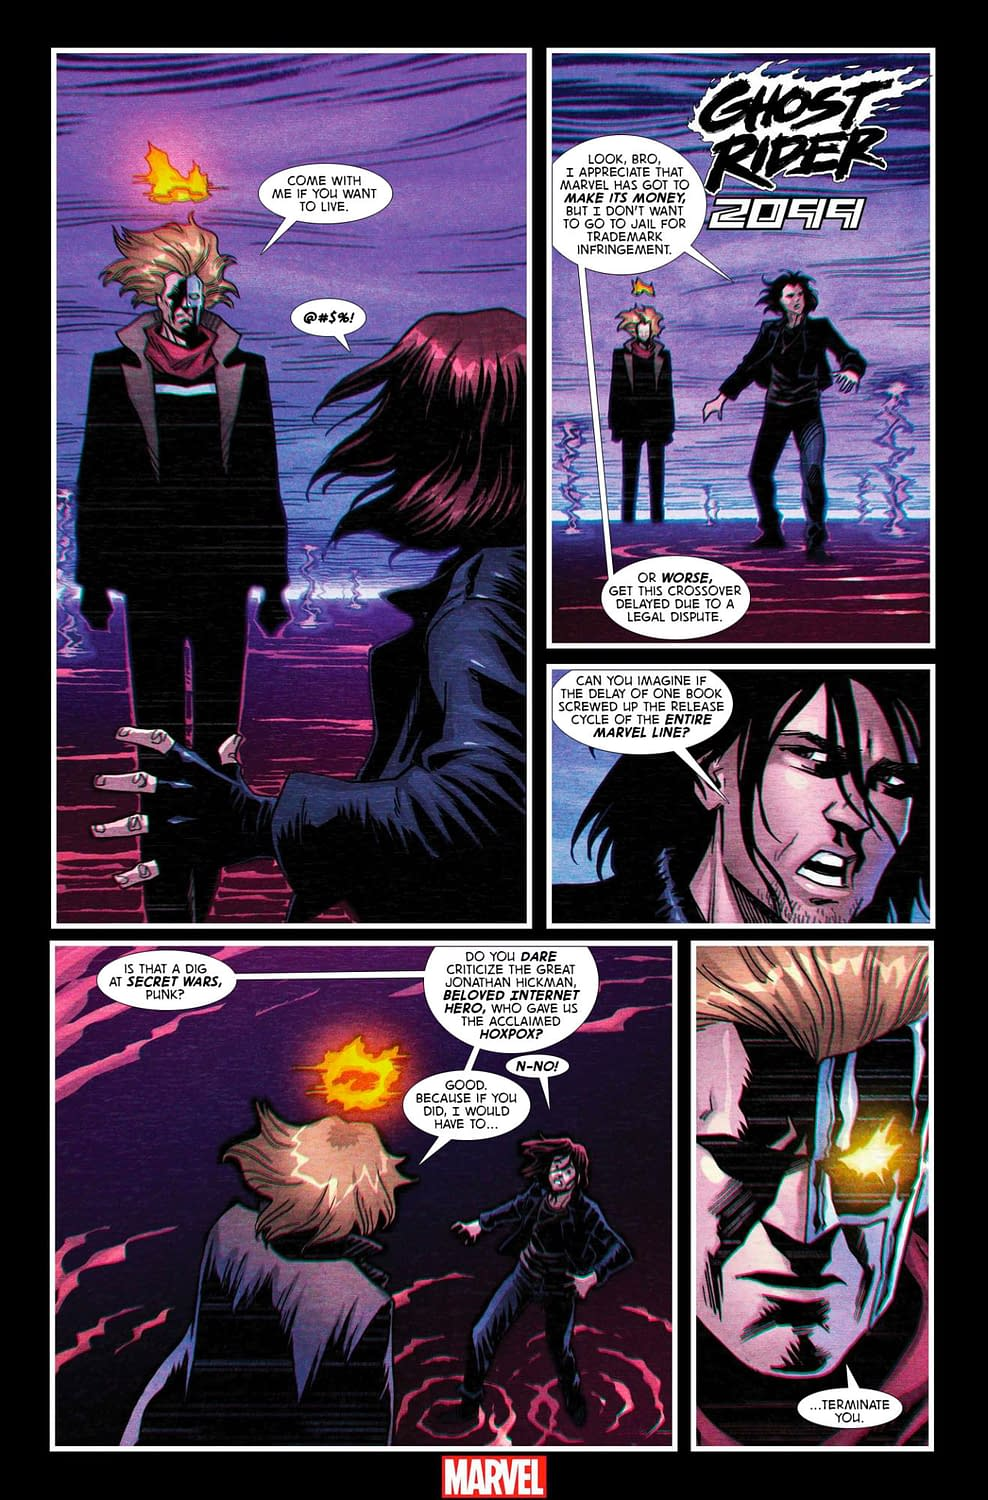 A Dark Fate for Ghost Rider 2099 #1 [Improbable Previews]